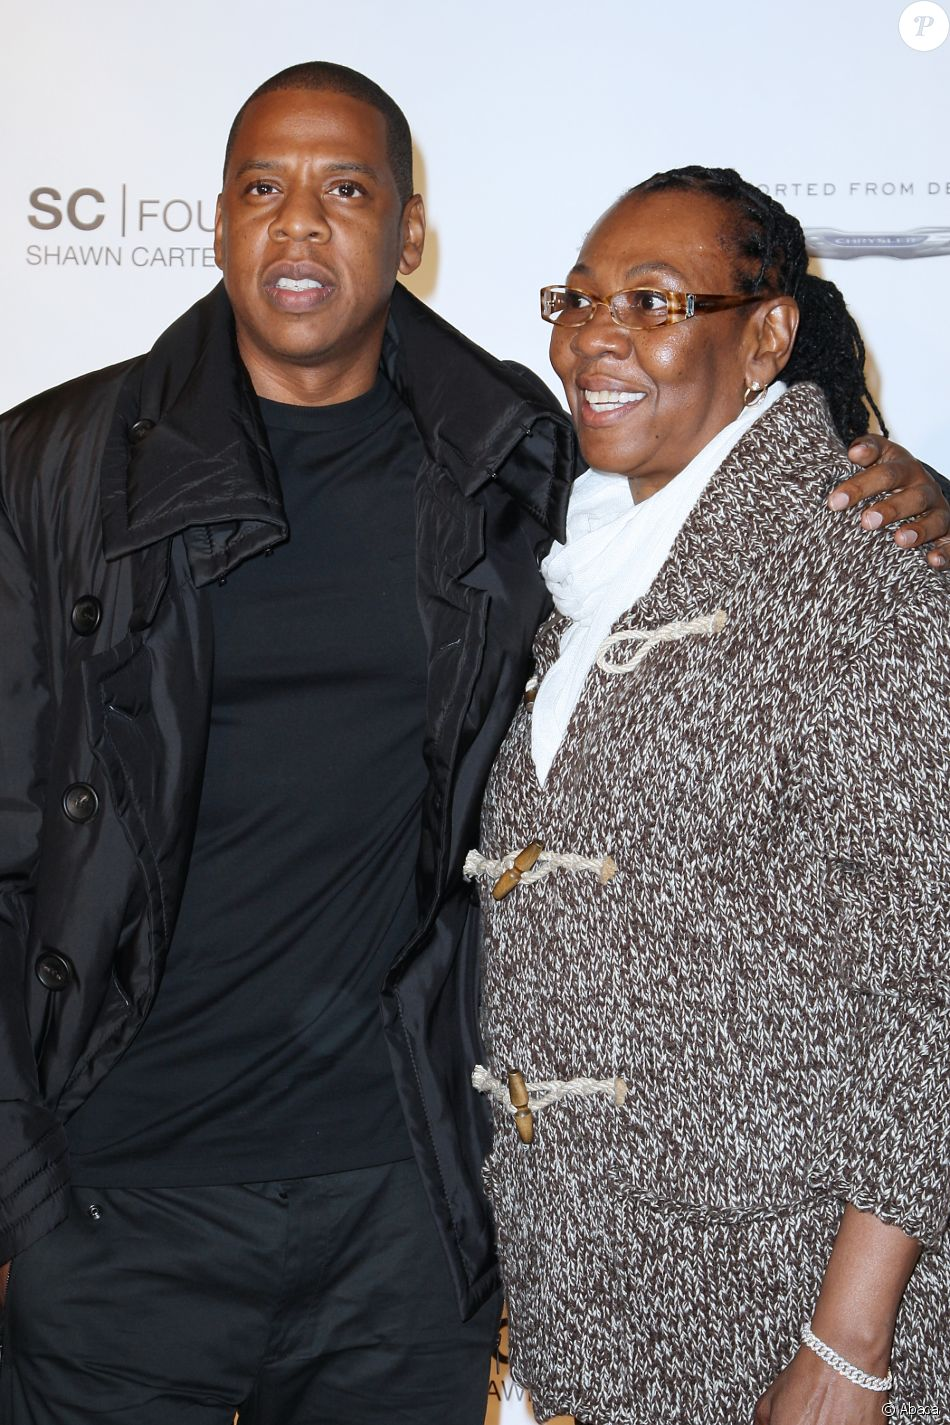 Jay-Z et sa mère Gloria Carter à la soirée de gala de la Shawn Carter Foundation à New York le 29 septembre 2011